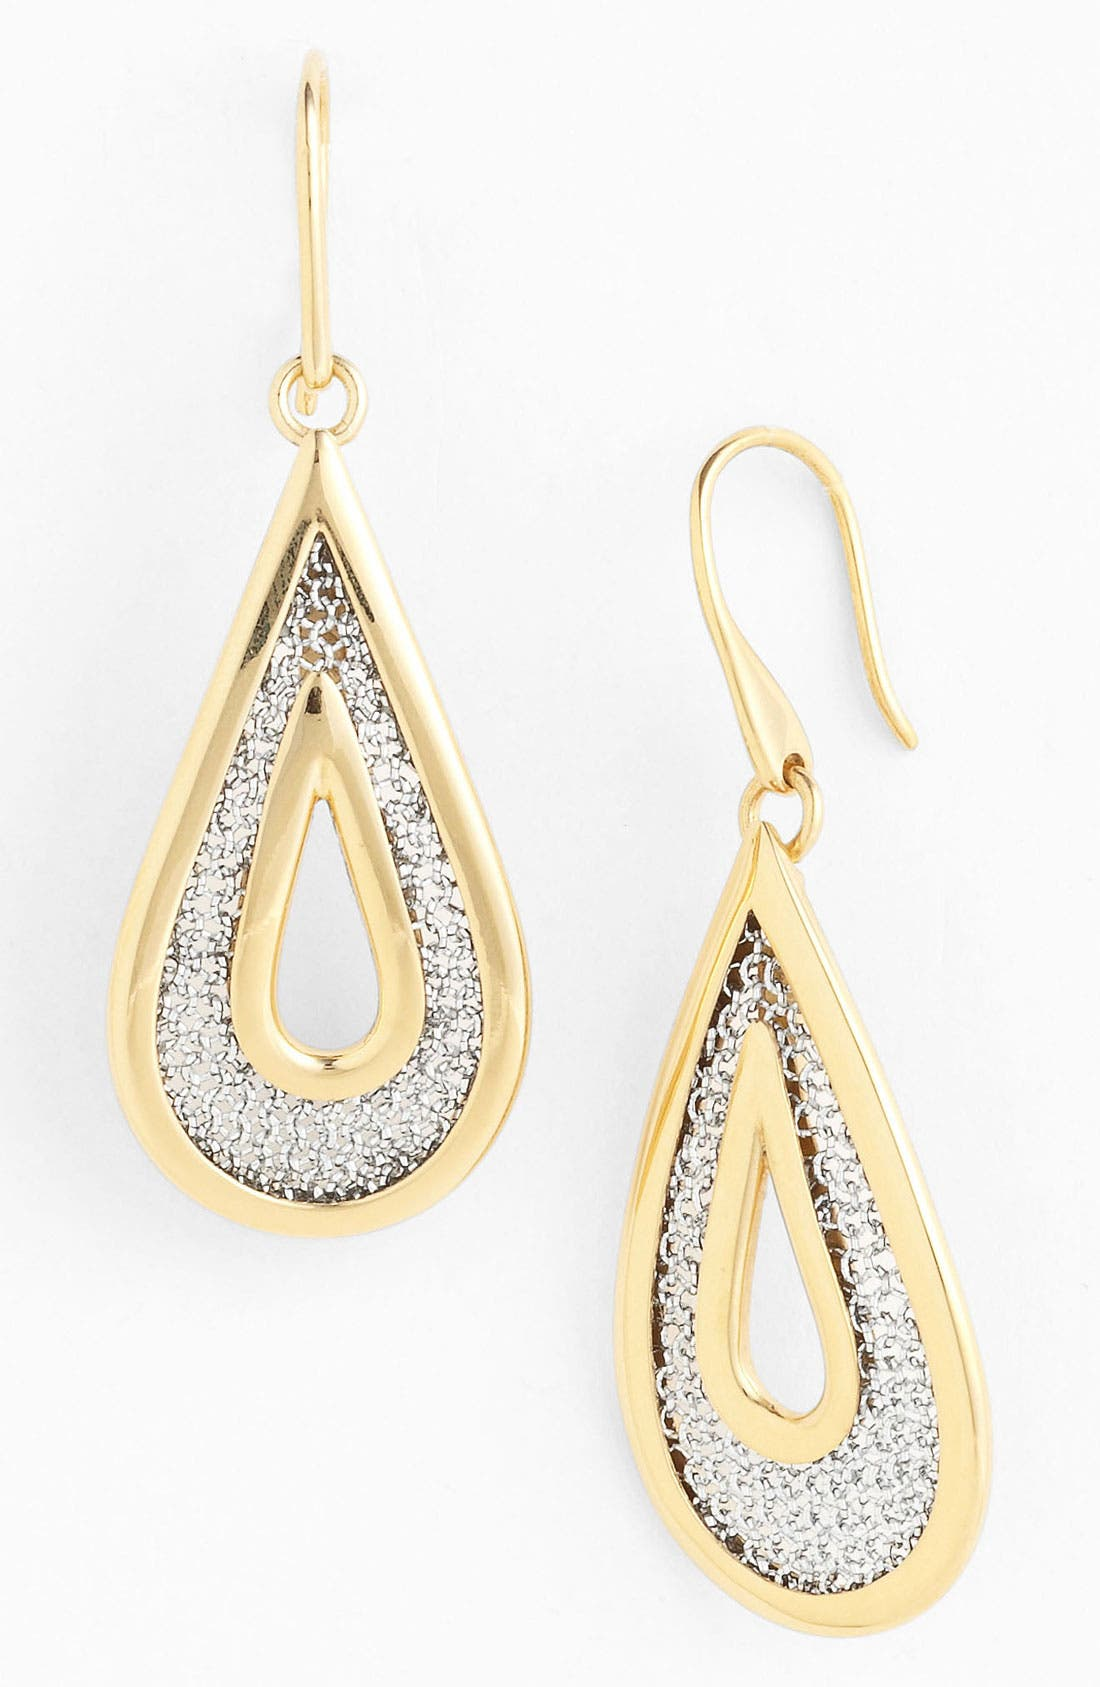 Main Image - Adami & Martucci 'Mesh' Small Open Teardrop Earrings (Nordstrom Exclusive)